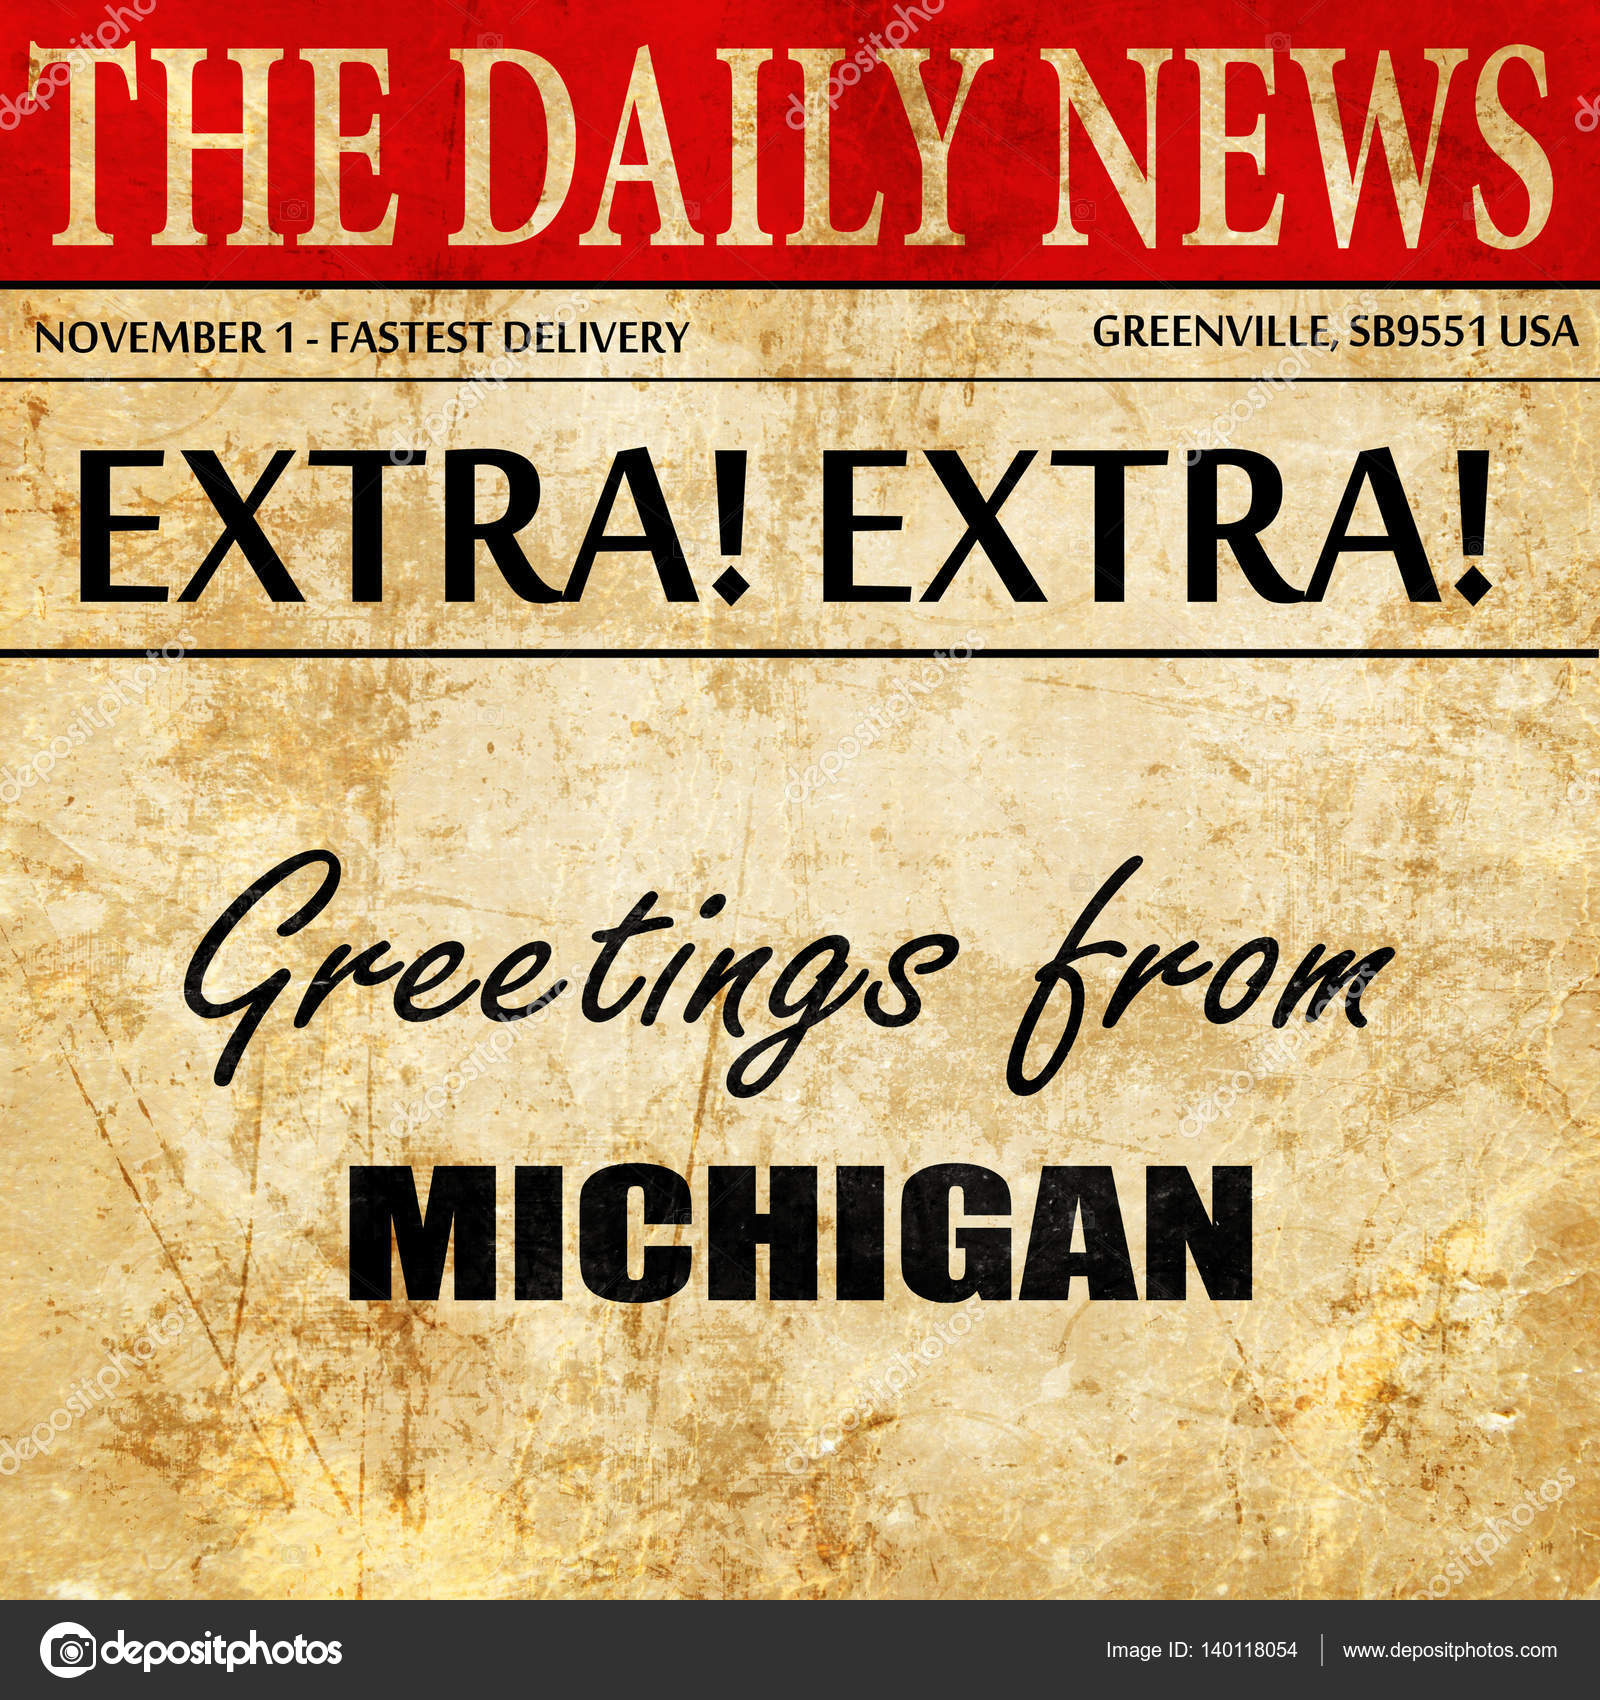 Greetings from michigan newspaper article text stock photo greetings from michigan newspaper article text stock photo m4hsunfo